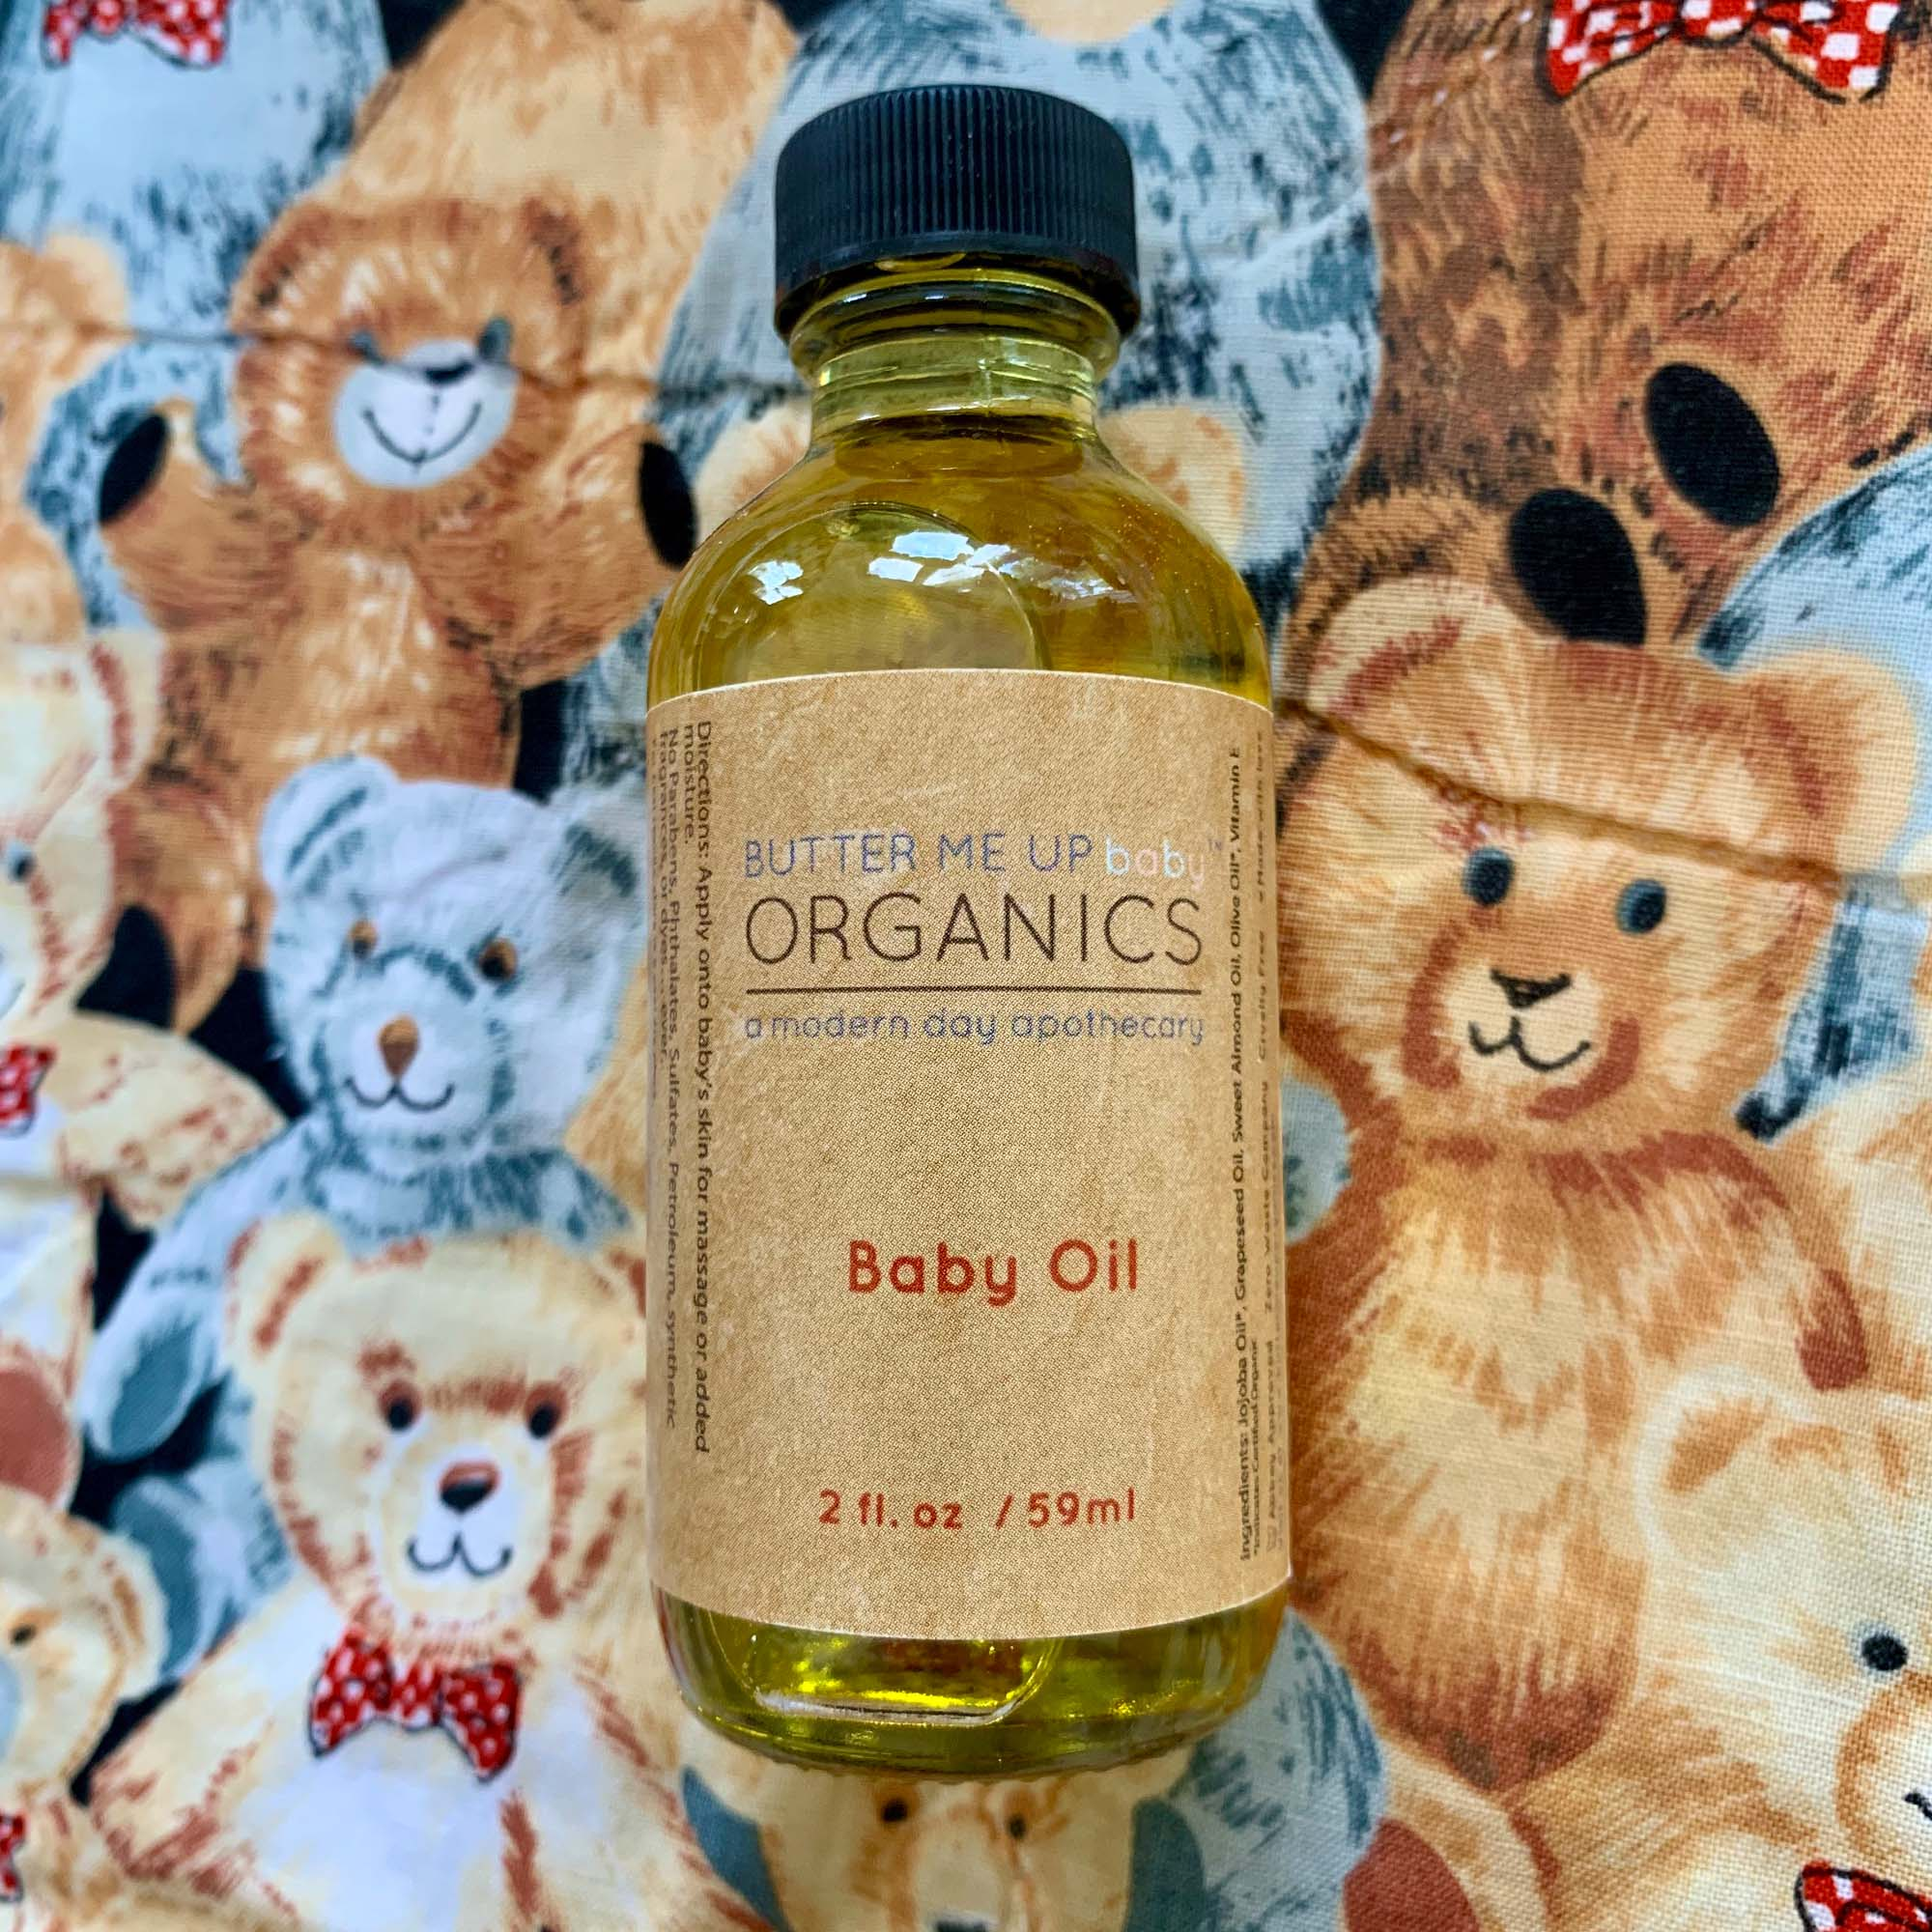 2 fl oz baby oil in clear container displayed in front of illustration of teddy bears